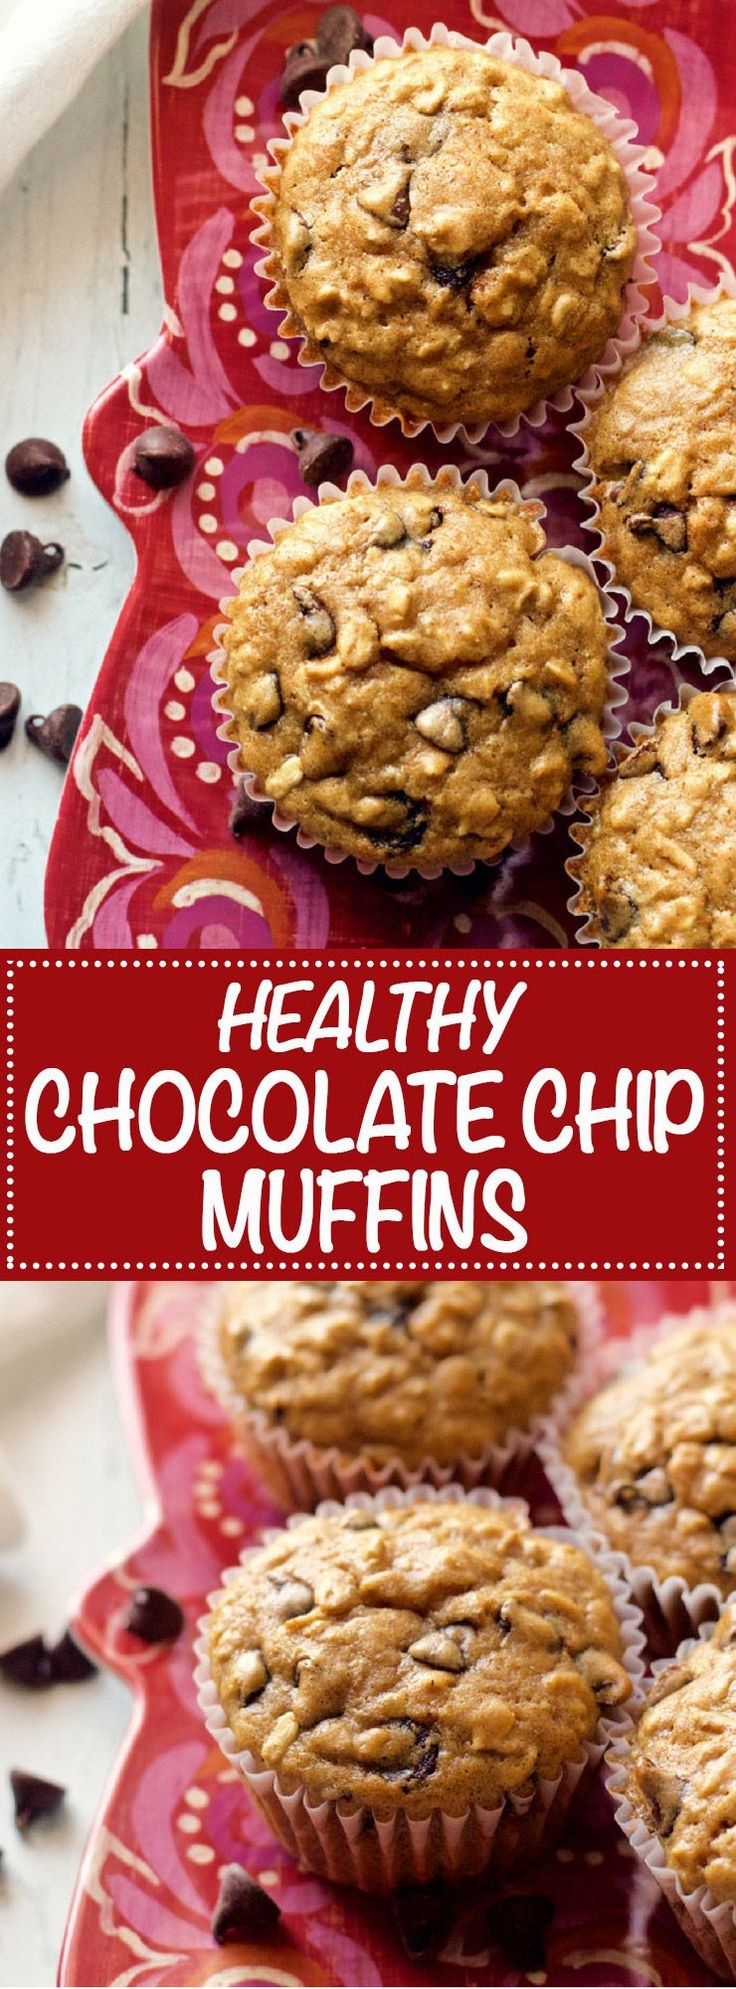 Whole wheat healthy chocolate chip muffins are 100% whole grain, low in sugar and can be made dairy-free. They're soft, fluffy and seriously loaded with chocolate chips. They're great for a fun breakfast or lunchbox treat or an afternoon or late-night snack! #healthymuffins #chocolatechipmuffins #healthysnack | www.familyfoodonthetable.com